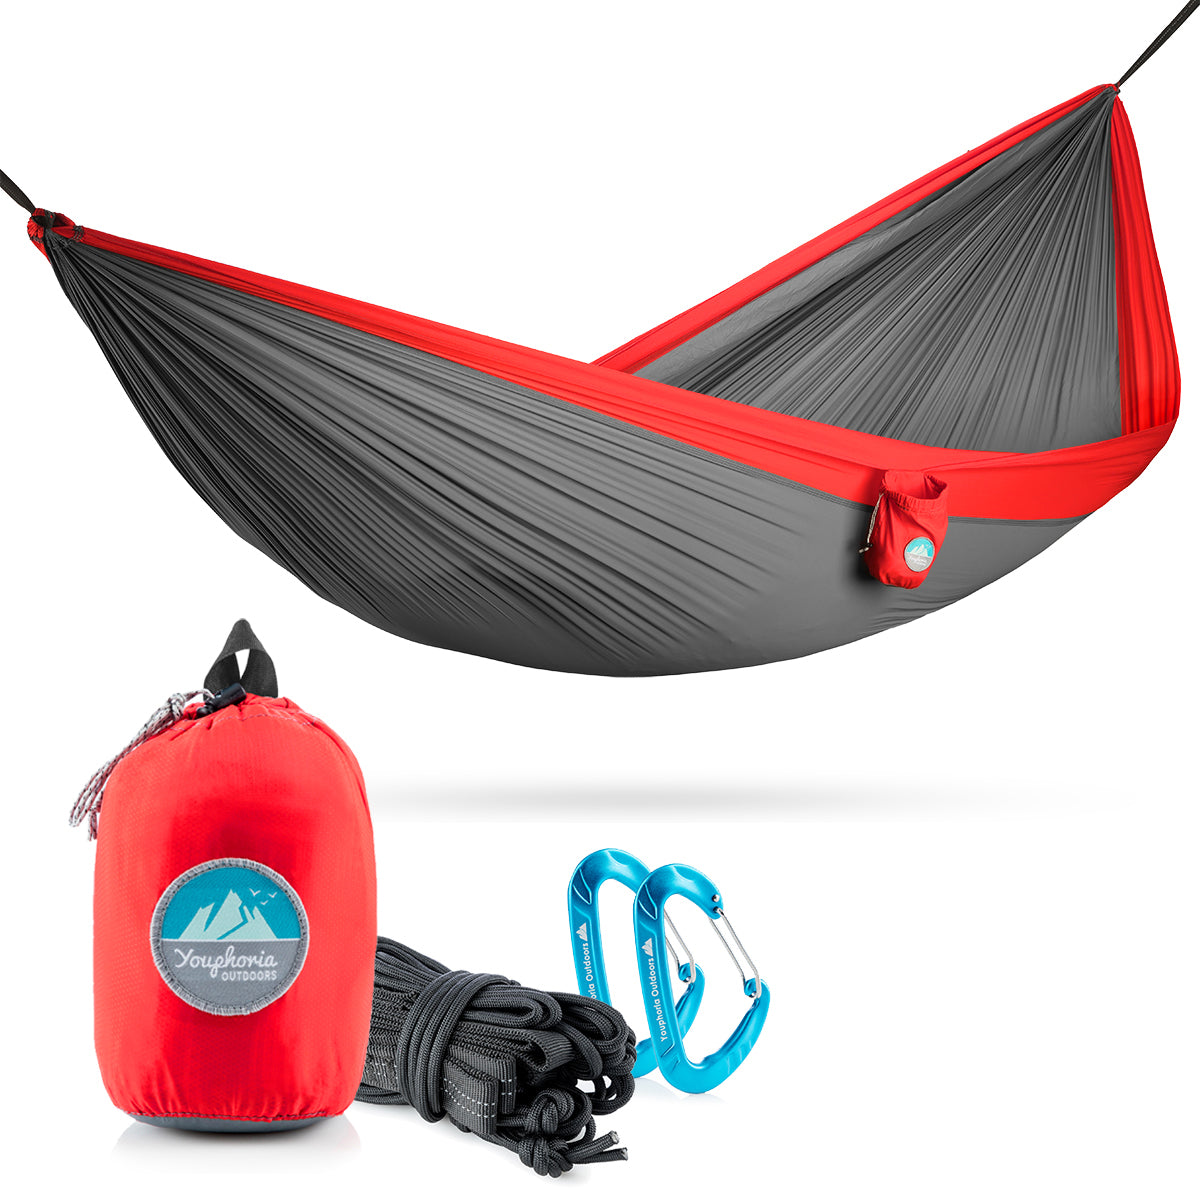 Youphoria Outdoors Portable Camping Ultralight Hammock in Gray/Red